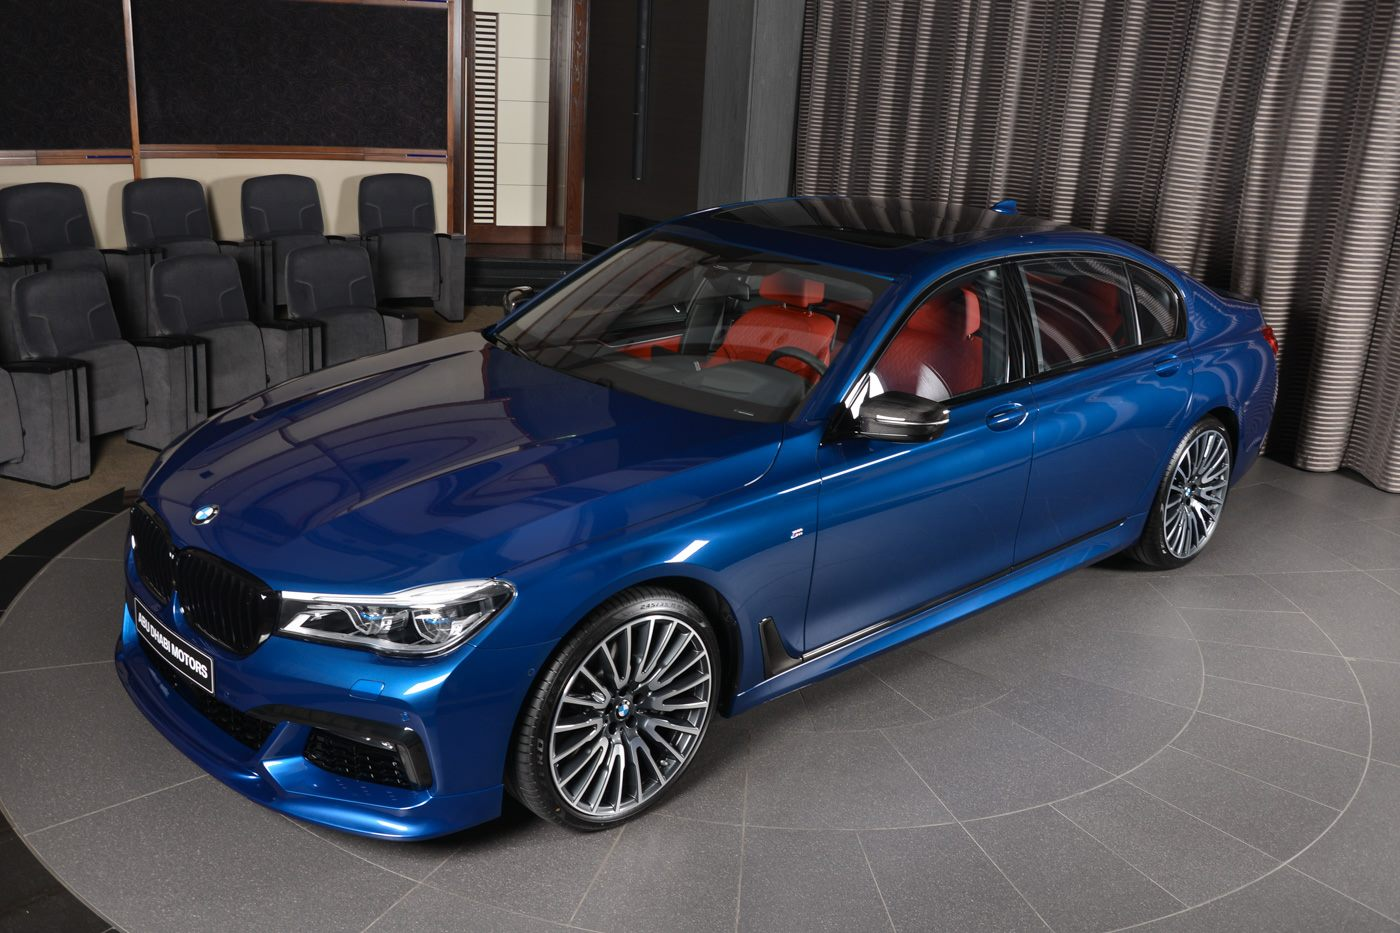 The special color scheme, alongside with a slew of further customization options, comes as a part of the BMW Individual program